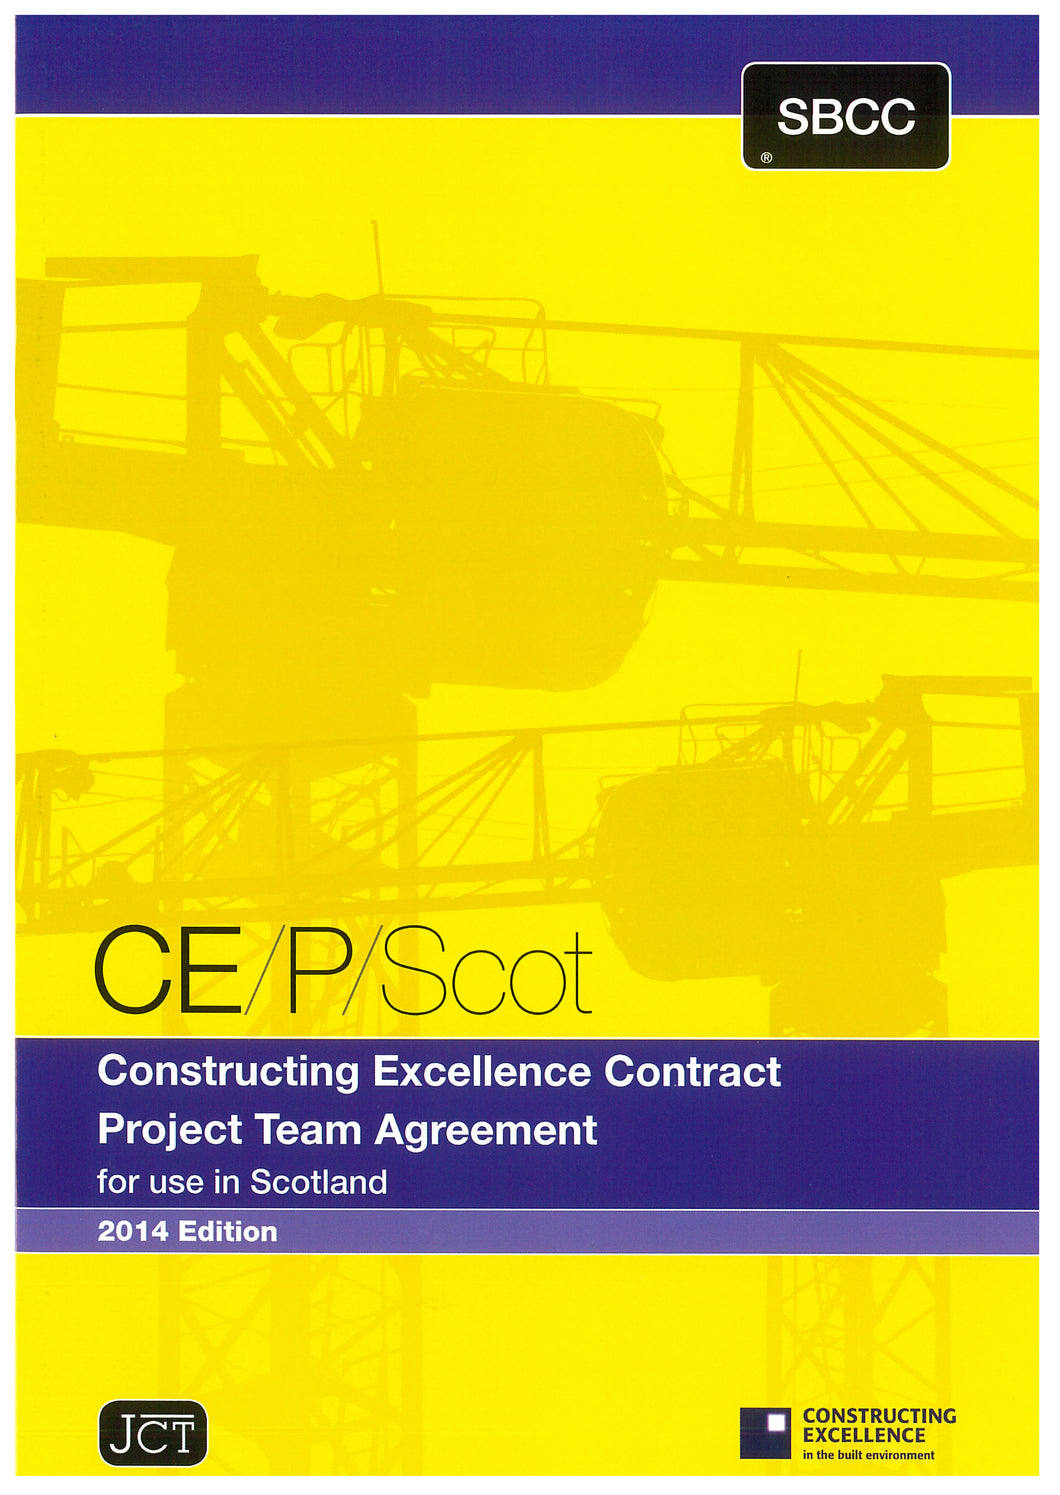 Construction Excellence Contract Project Team Agreement for use in Scotland 2014